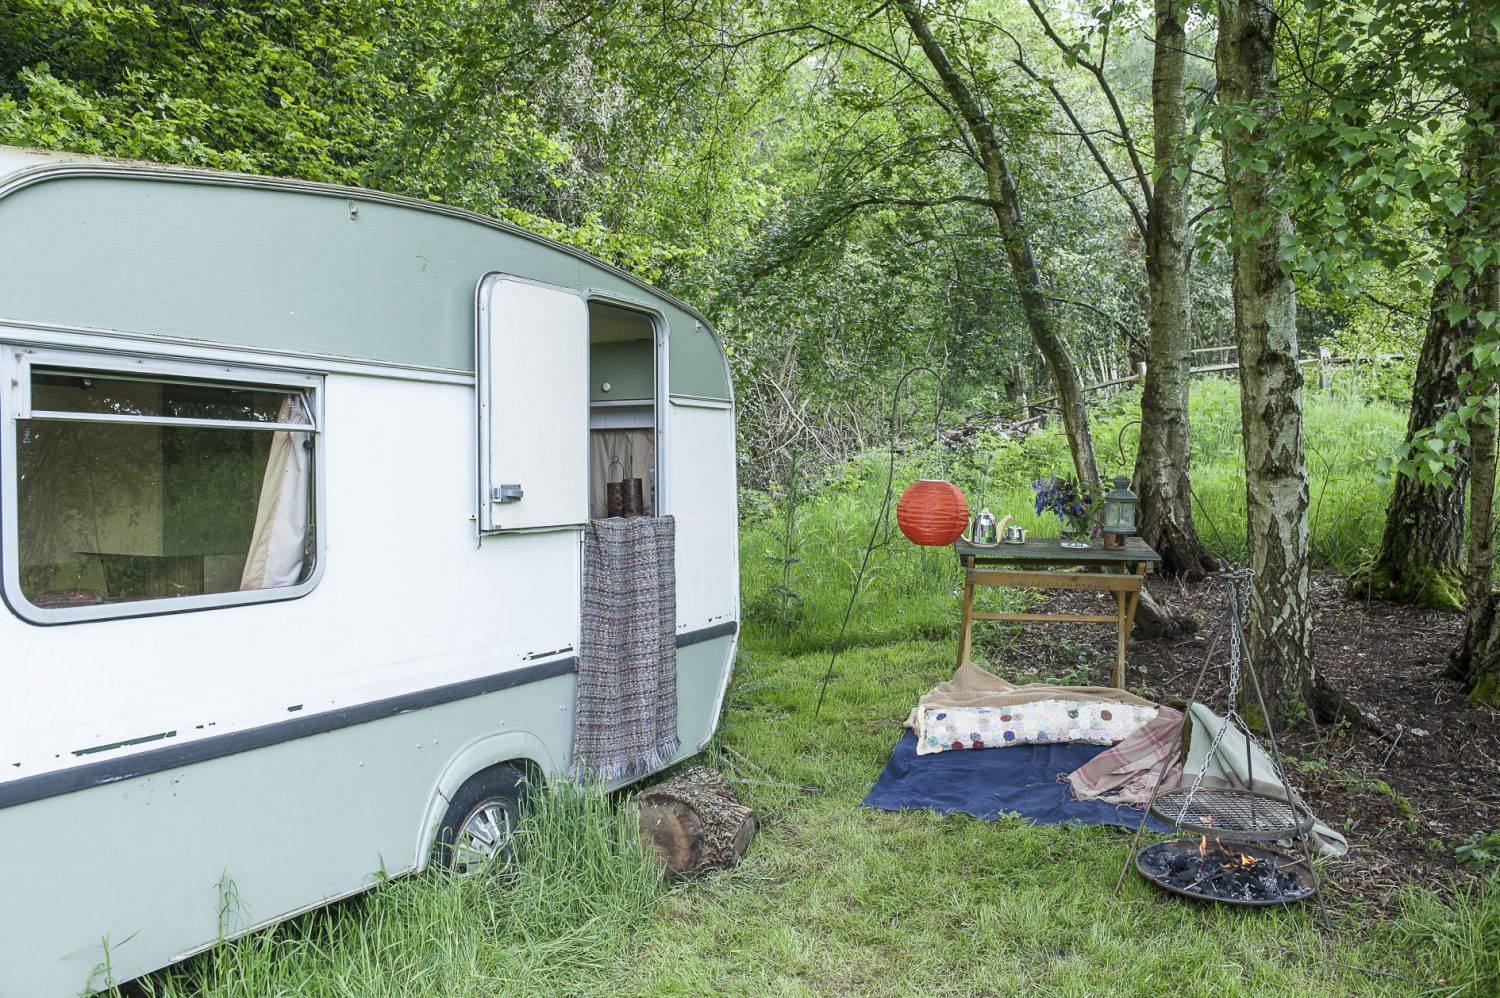 At the bottom of the paddock an old caravan is another of Wendy's projects in progress. Cranbrook Iron's mini firebowl with a tripod grill is the perfect way to enjoy summer evenings in the garden